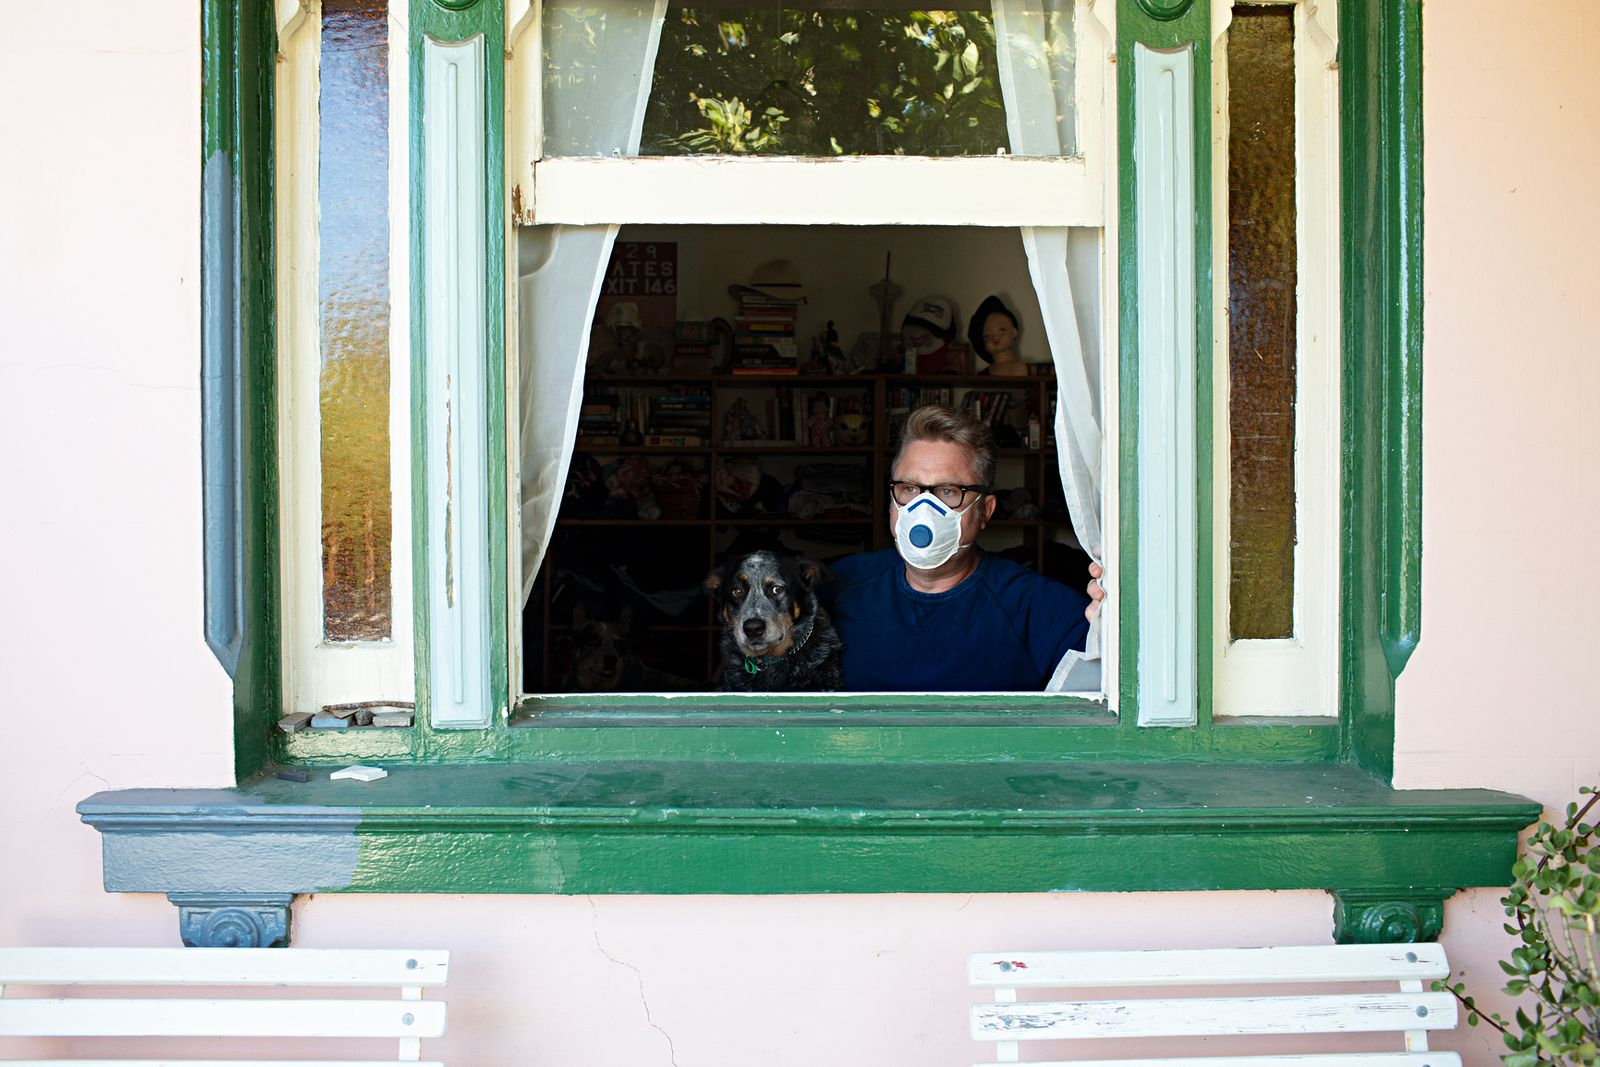 Middle Aged Sick Man Under Home Quarantine Due To Covid19 In Window Looking Out